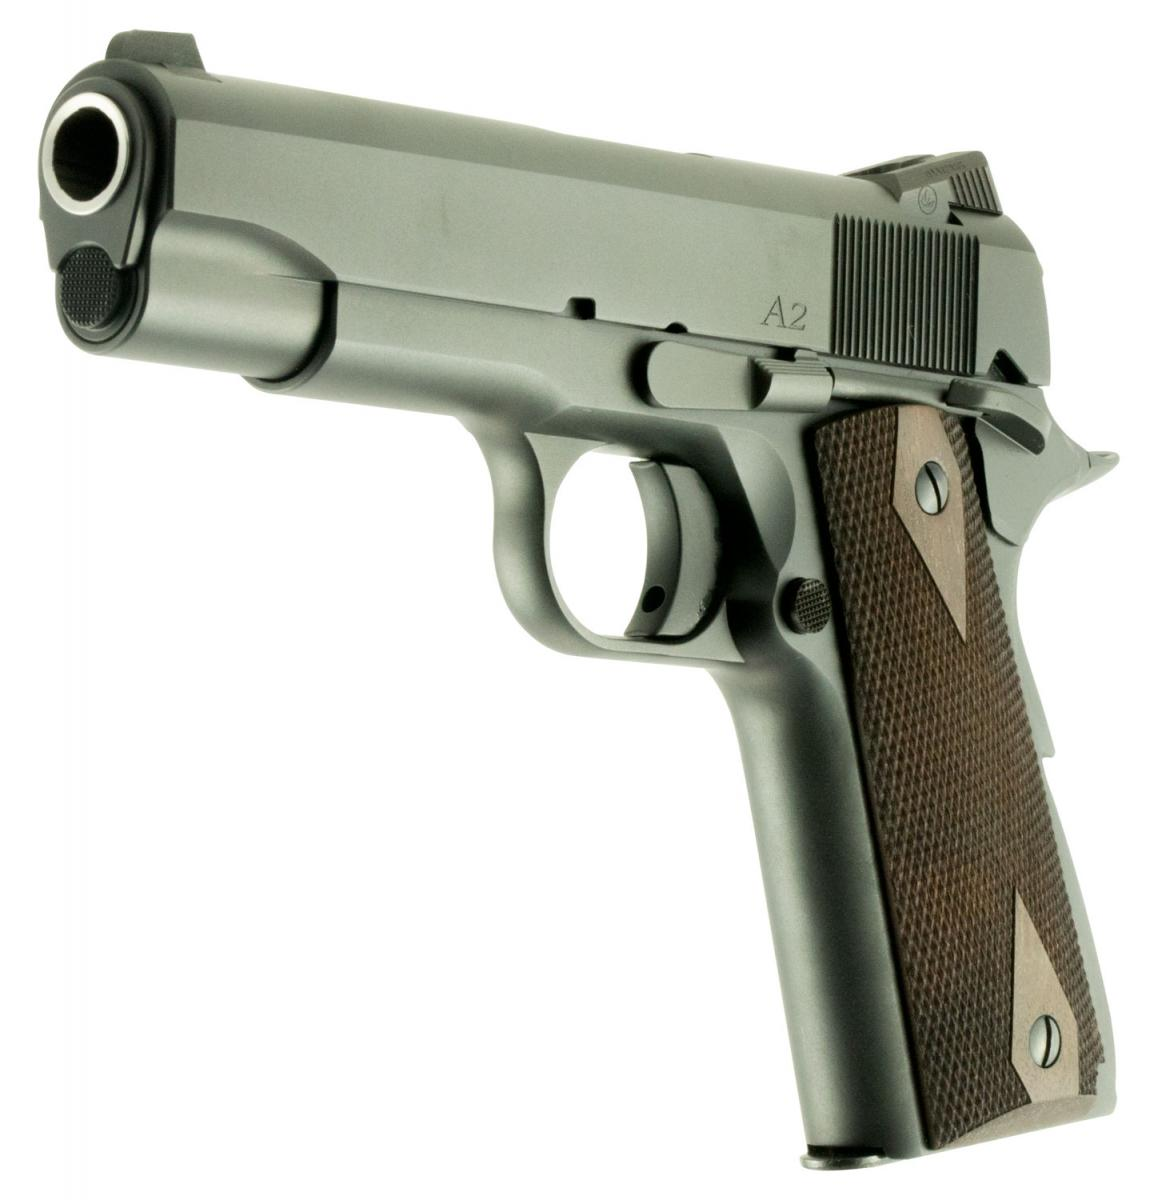 CZ Dan Wesson 1911 A2 Commander |.45 ACP 4.25 Inch Barrel Checkered Walnut Grips, Two 7 Round Magazines